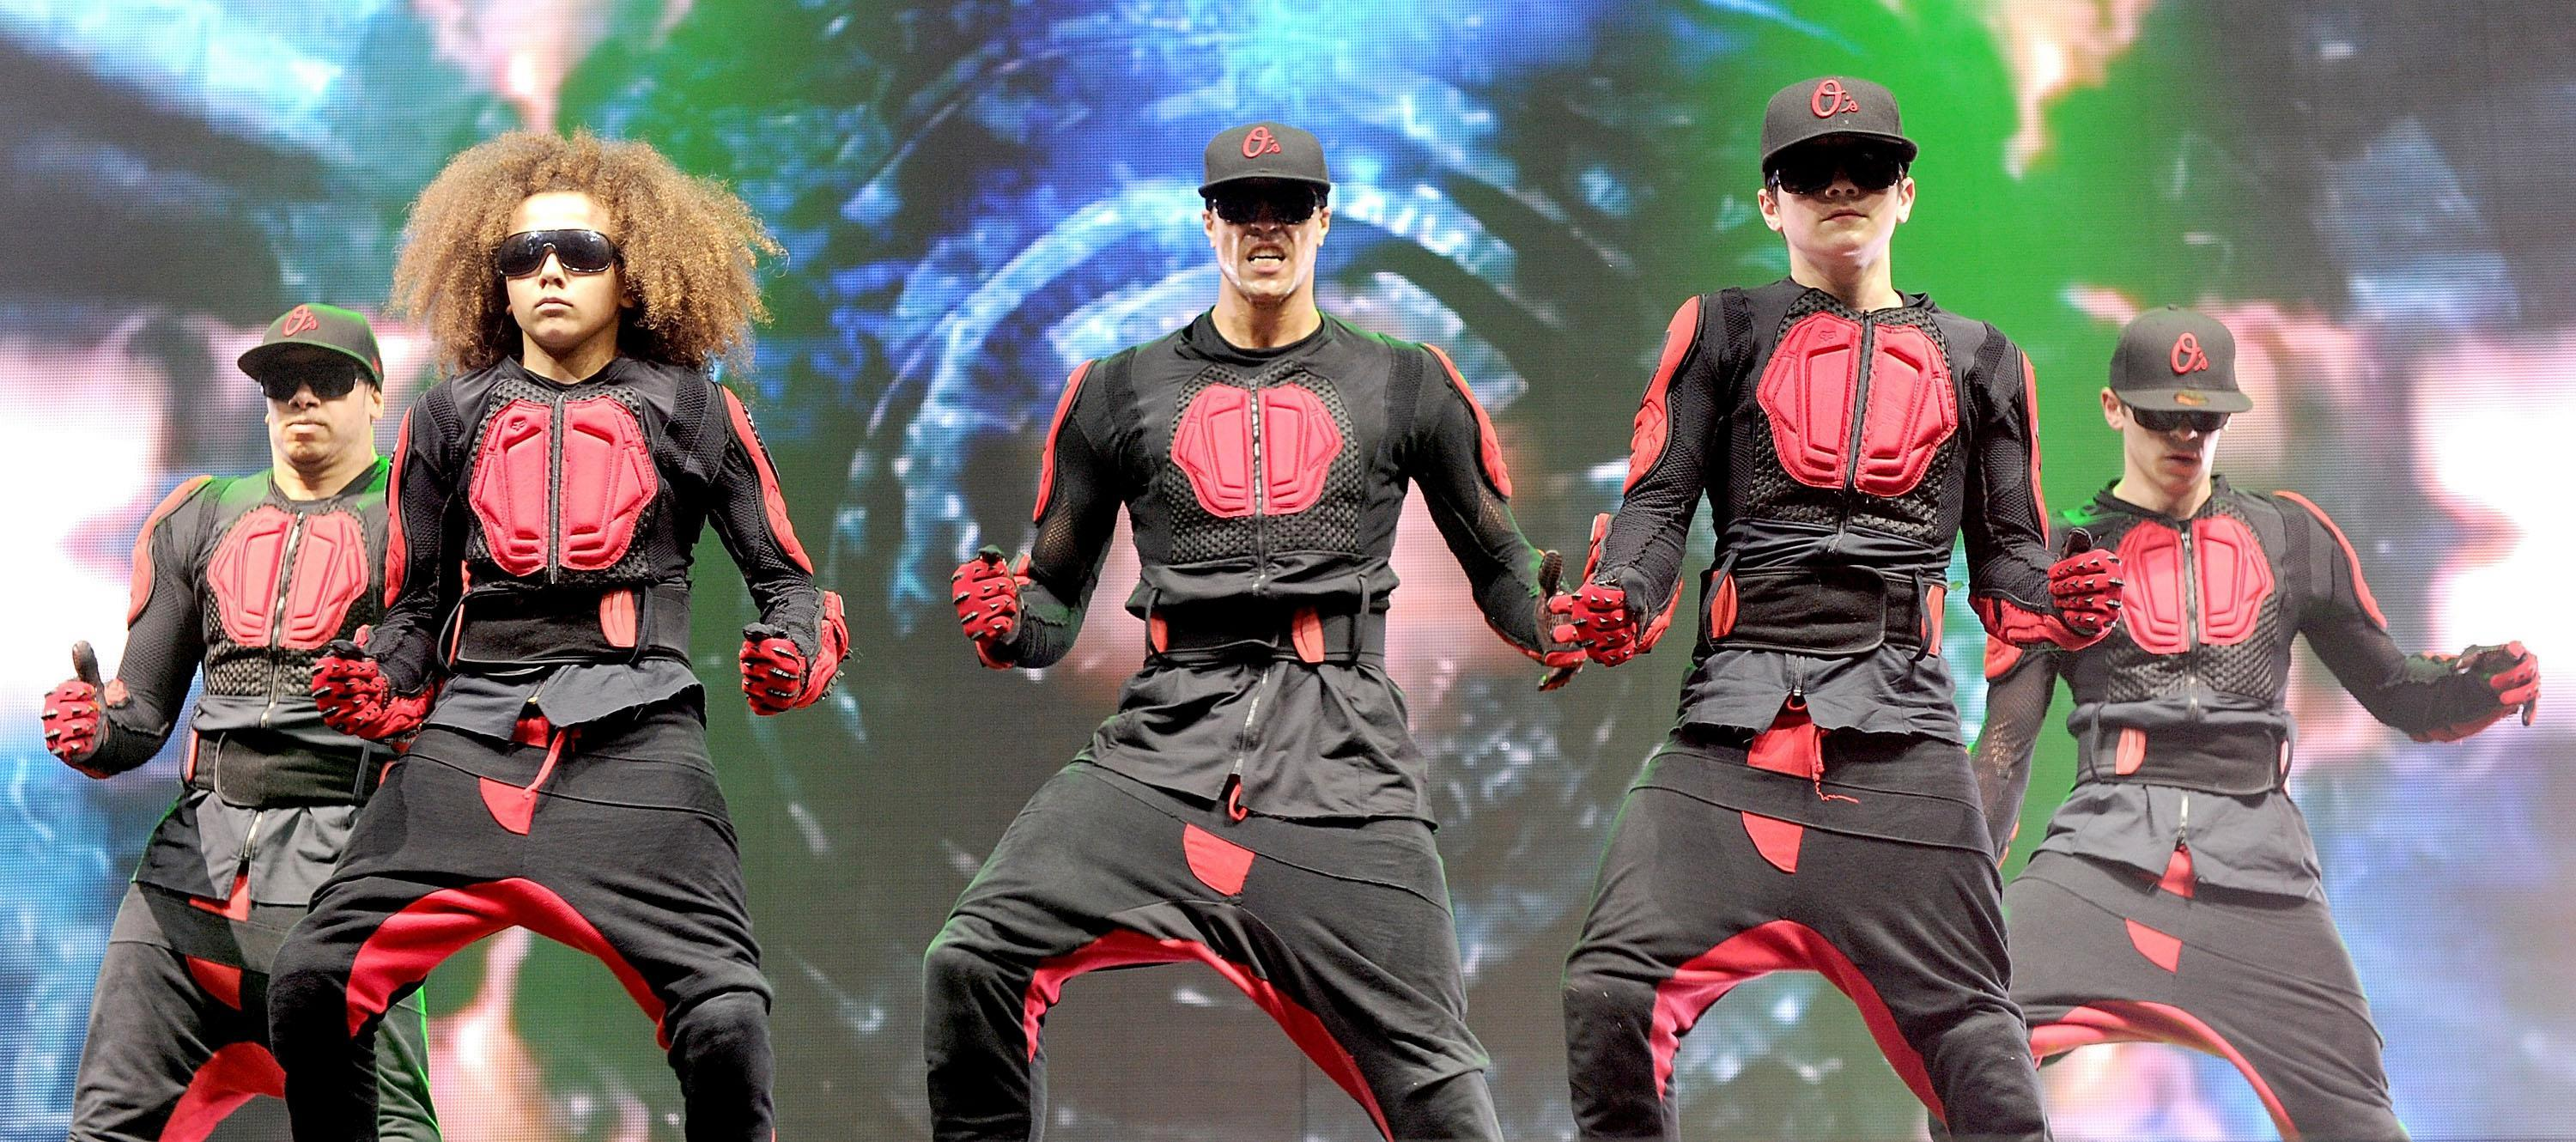 When are Diversity going on tour in 2018? When did Ashley Banjo's dance group win Britain's Got Talent and will Perri Kiely be on tour?